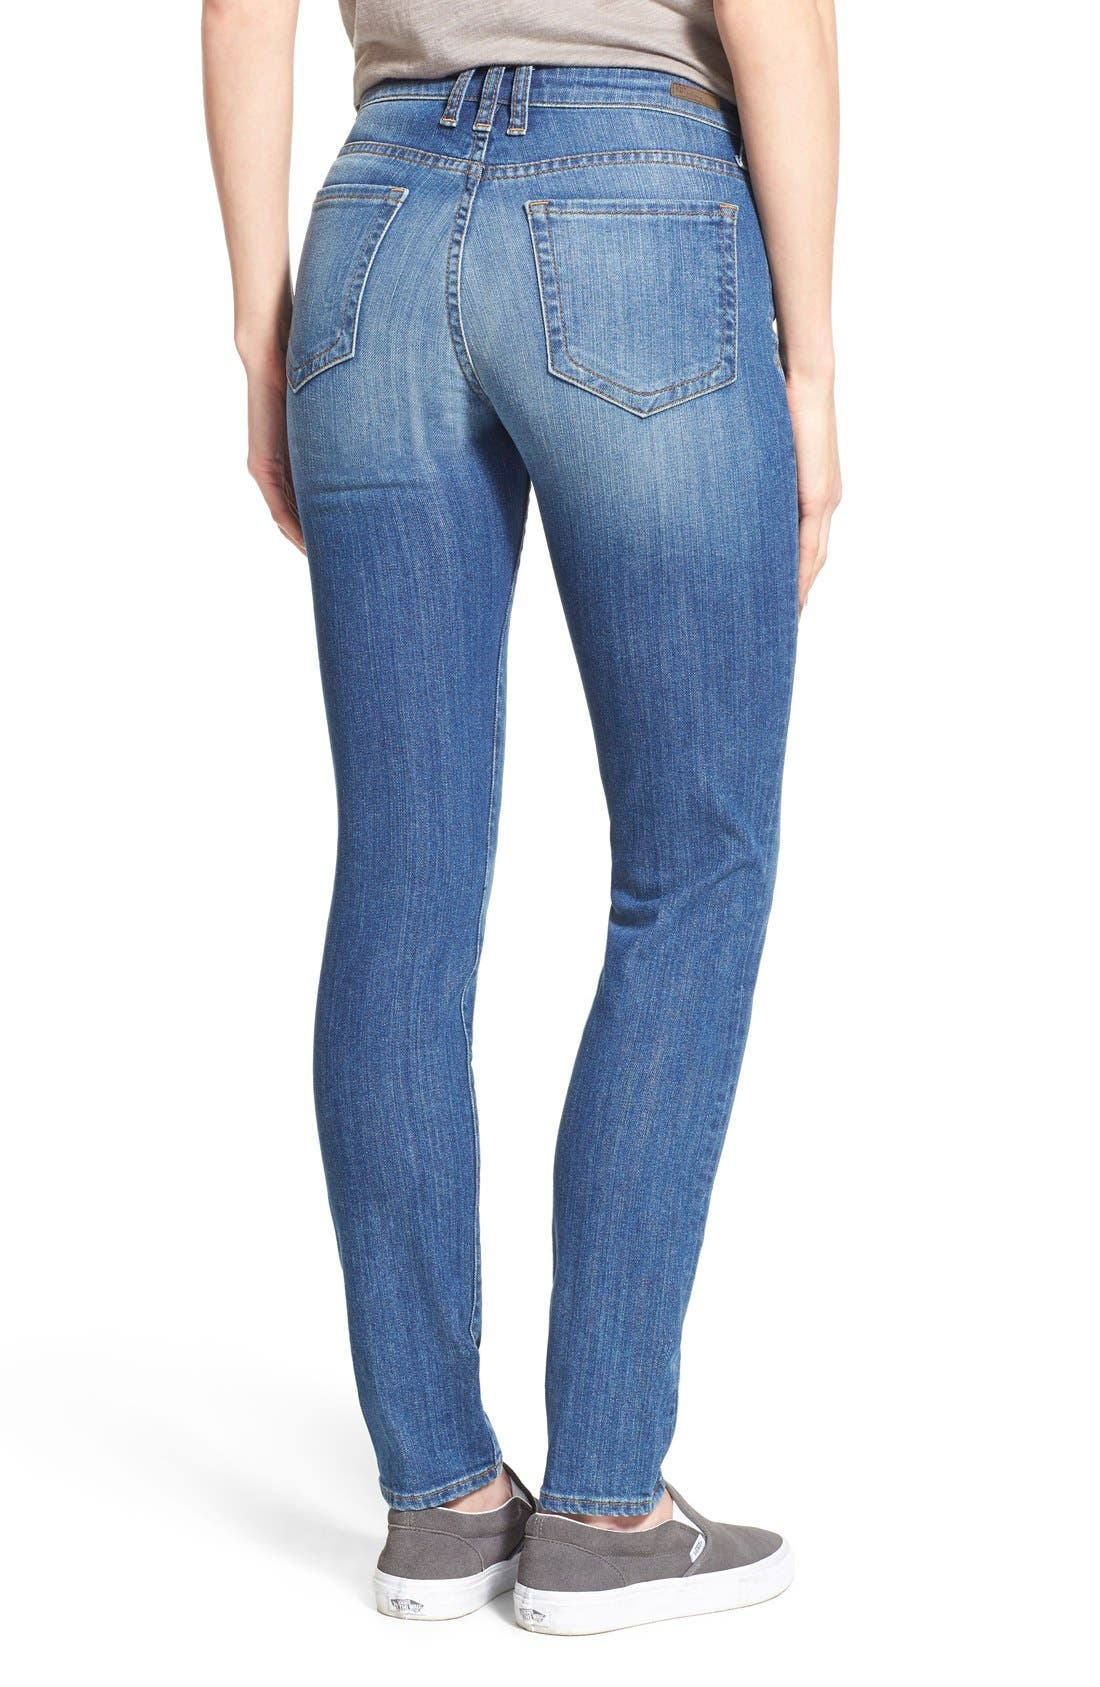 'Diana' Stretch Skinny Jeans,                             Alternate thumbnail 5, color,                             402